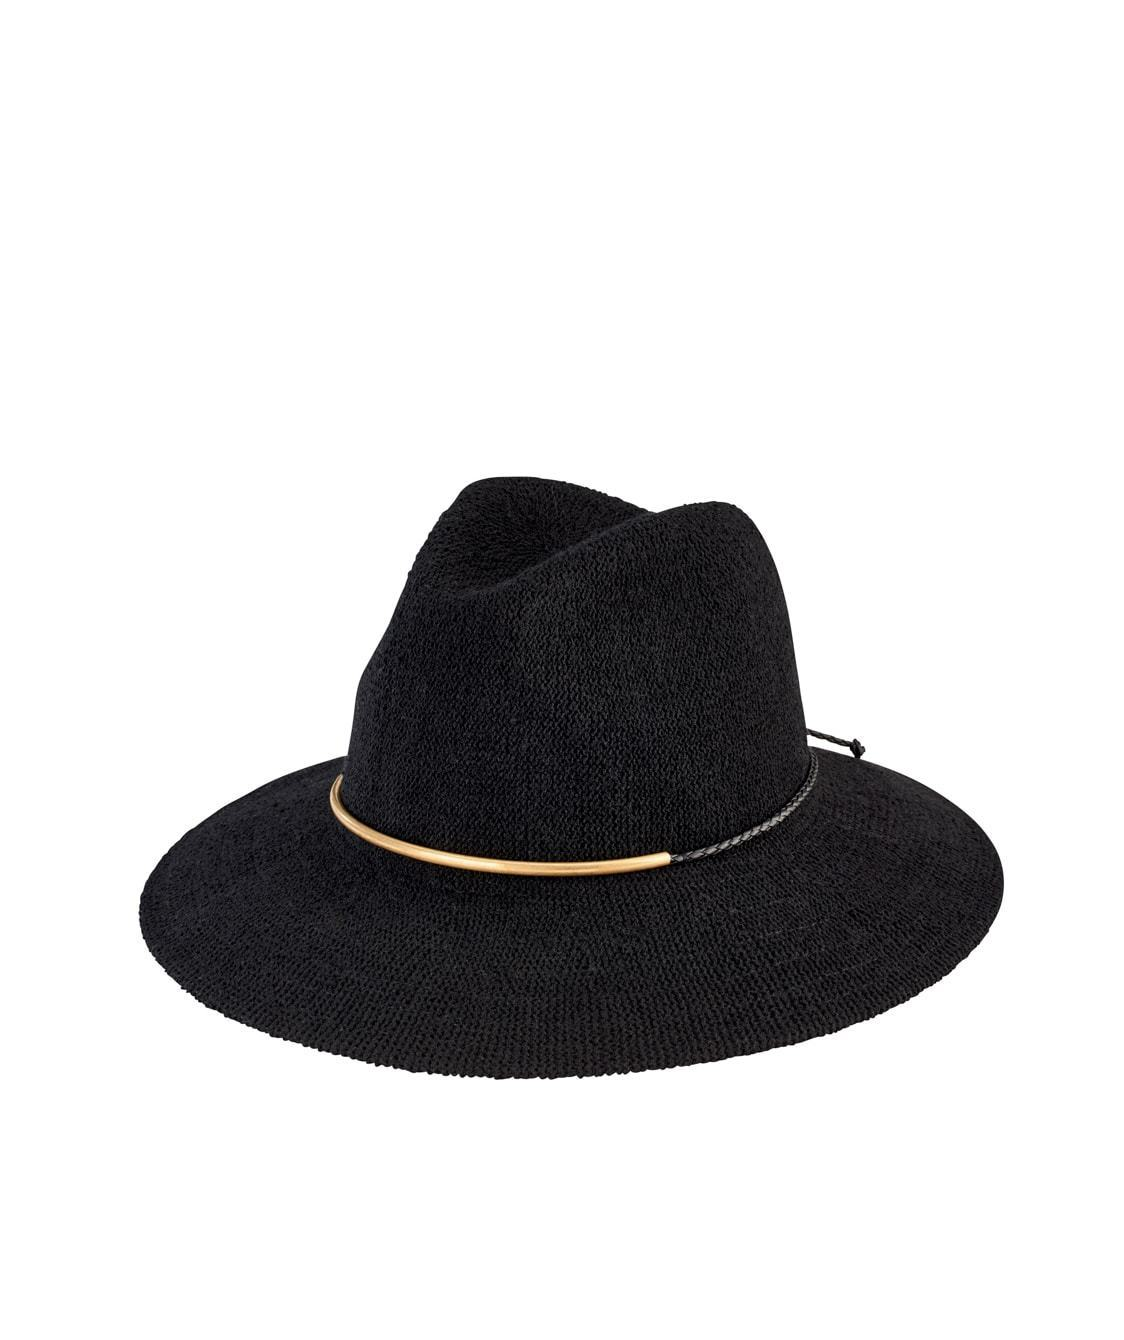 b74ba2520d6 Women s Knit Fedora with Braided Faux Suede (CTH8077) - San Diego ...